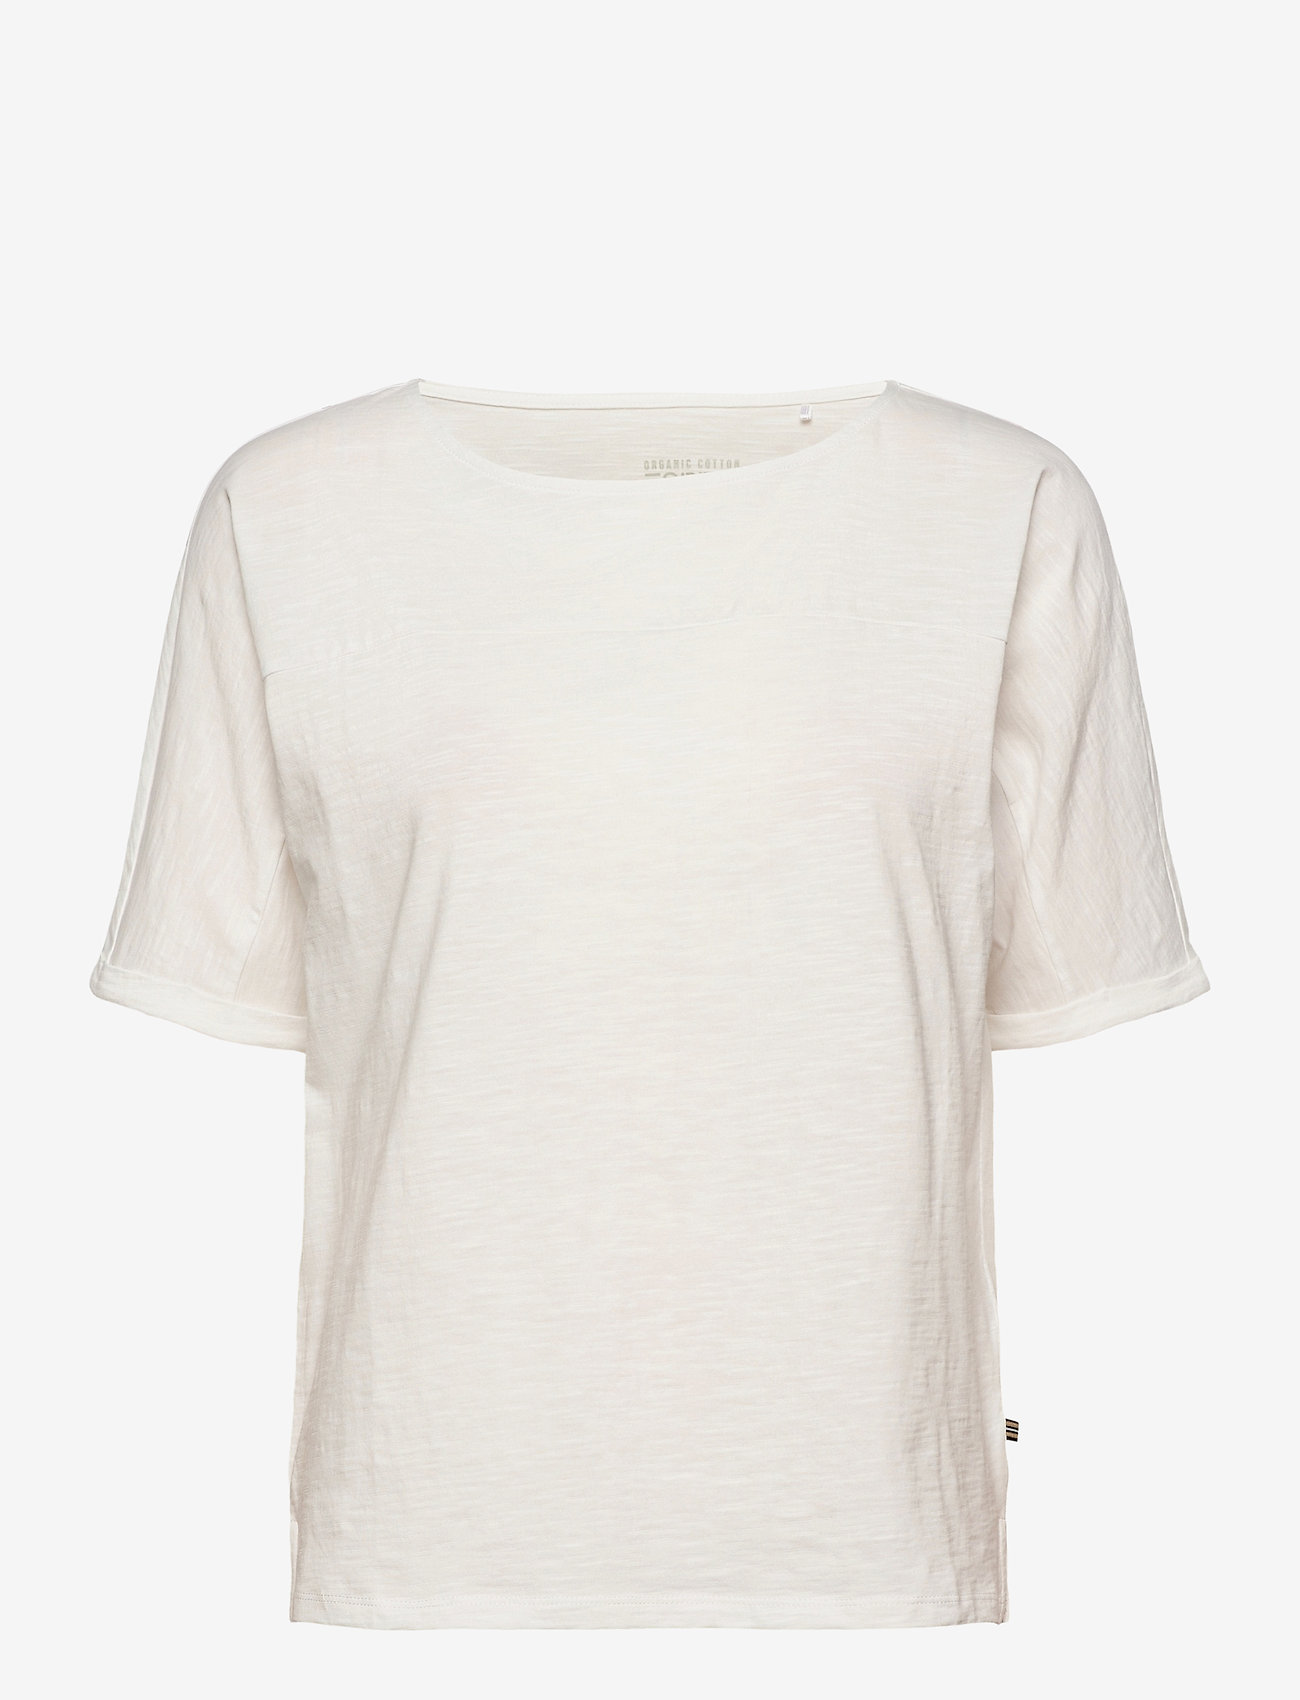 Esprit Casual - T-Shirts - t-shirt & tops - off white - 0